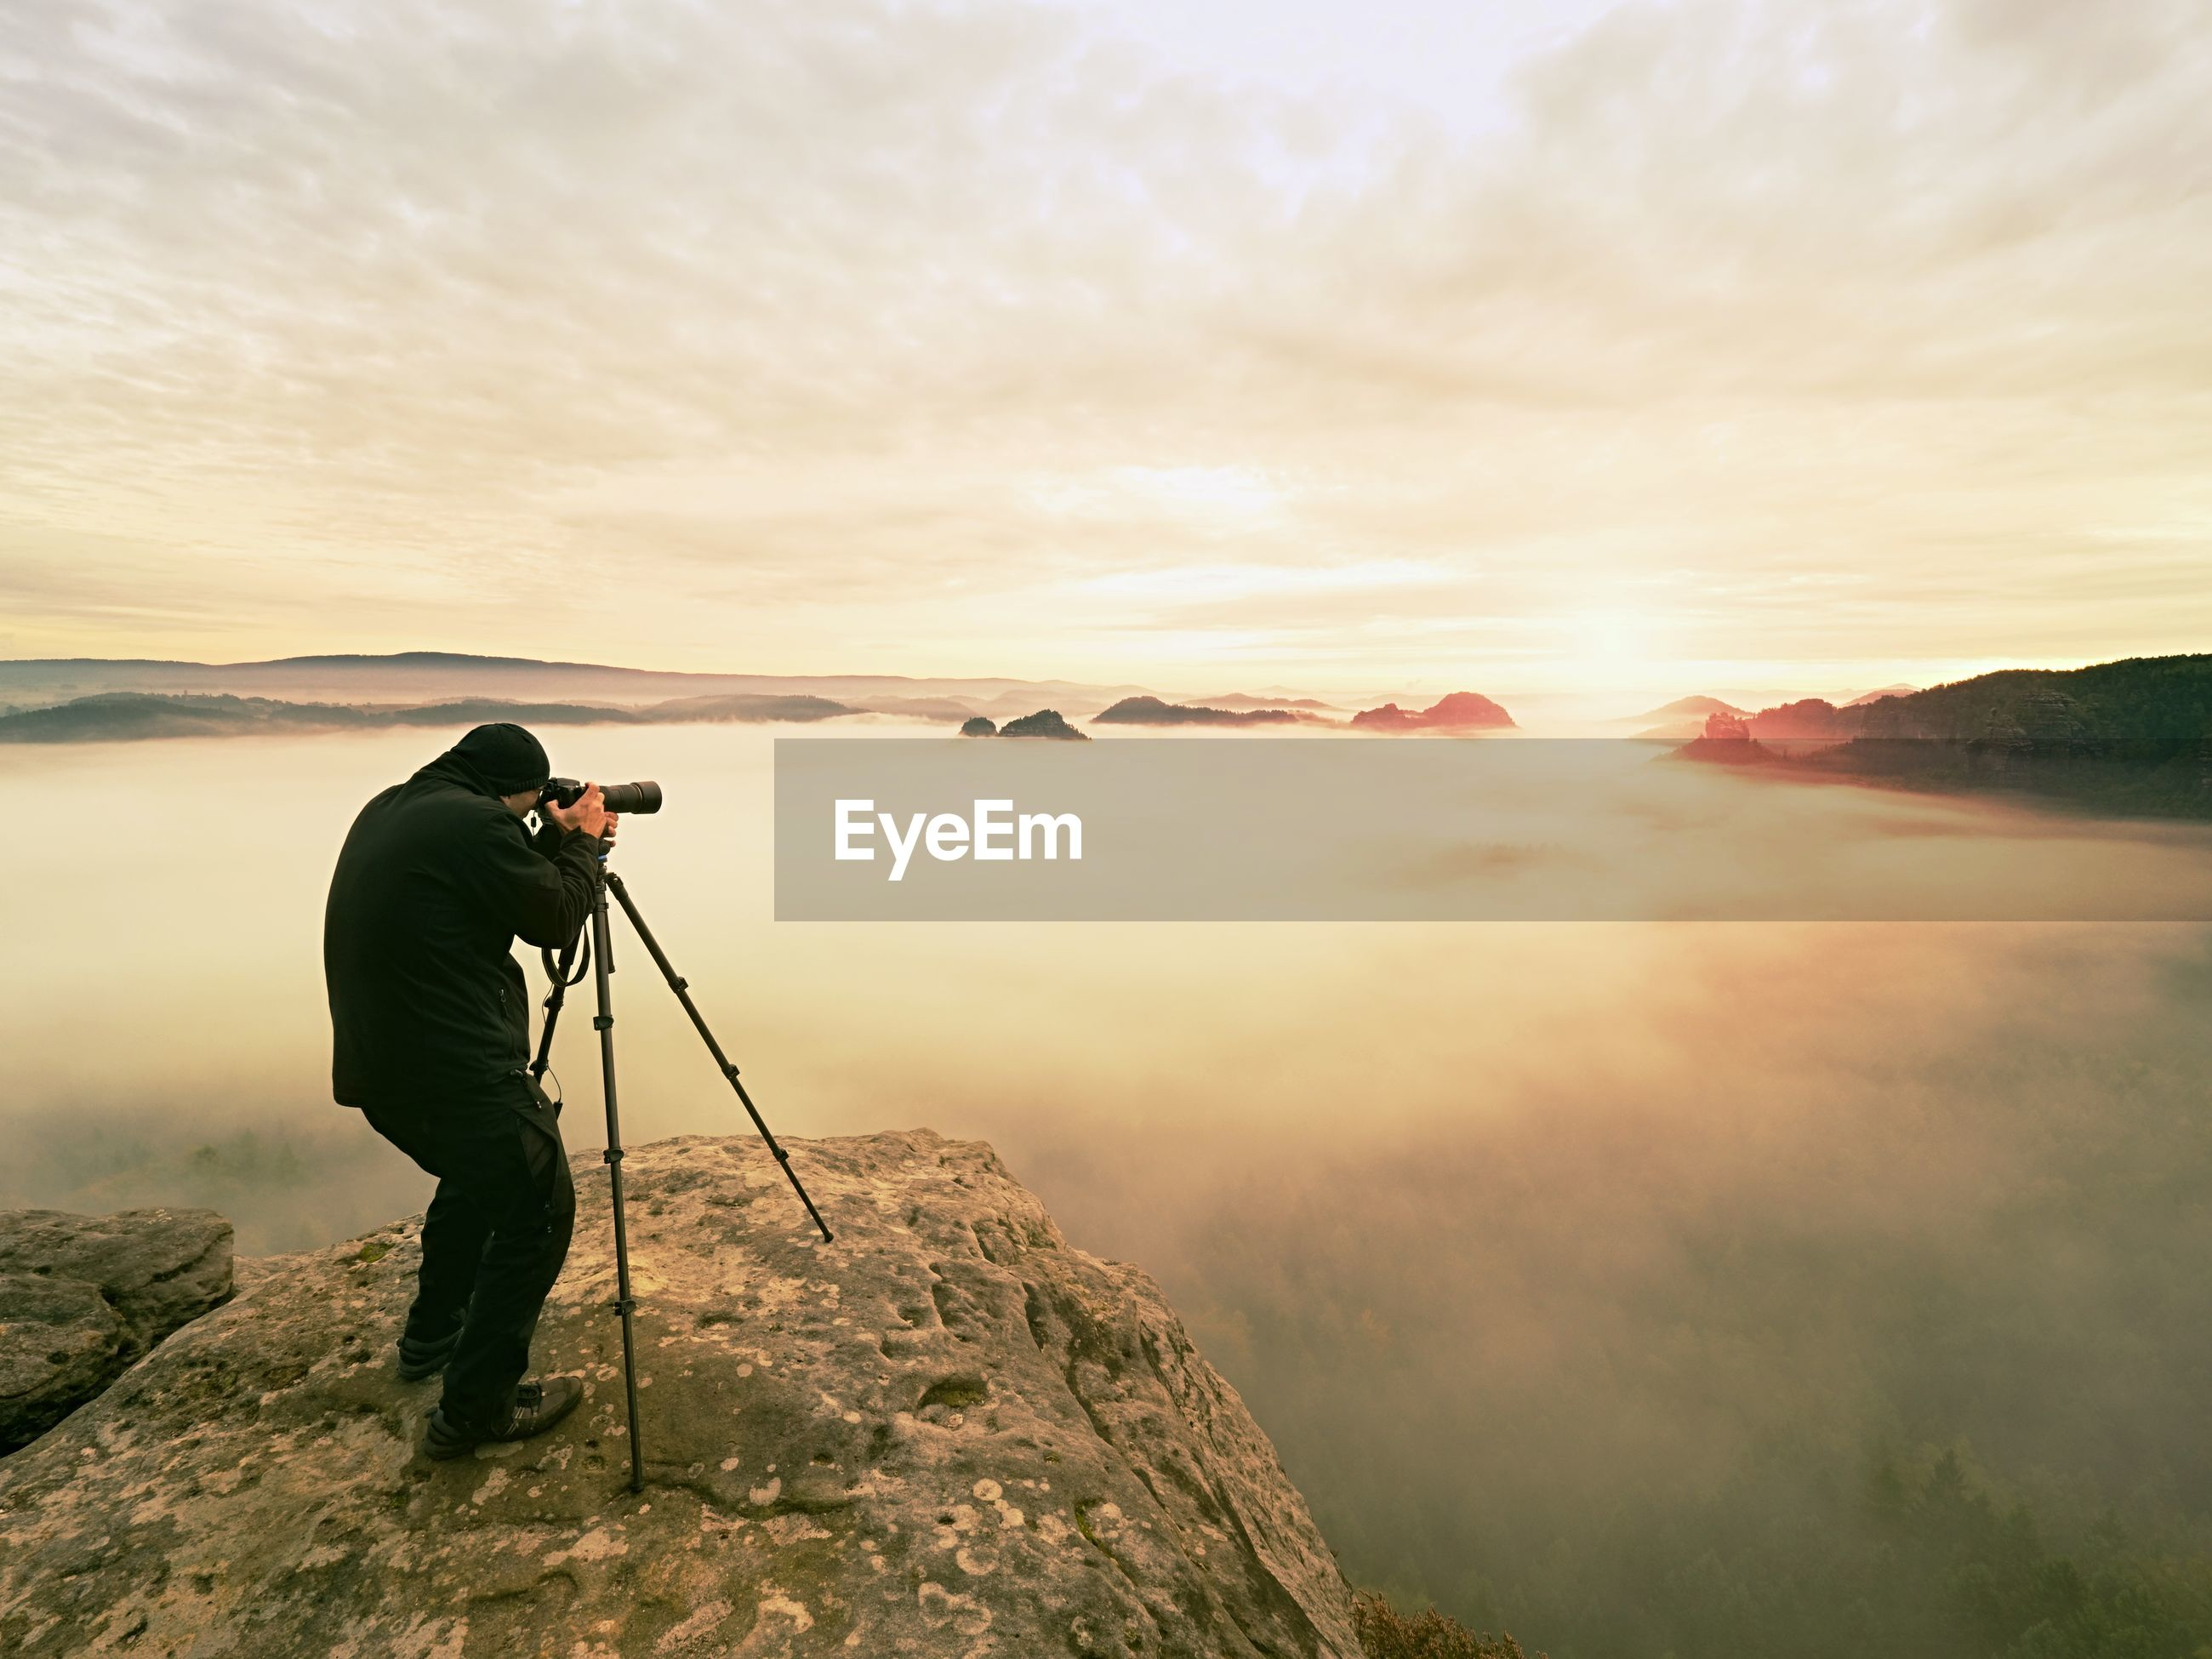 MAN PHOTOGRAPHING ON MOUNTAIN AGAINST SKY AT SUNSET